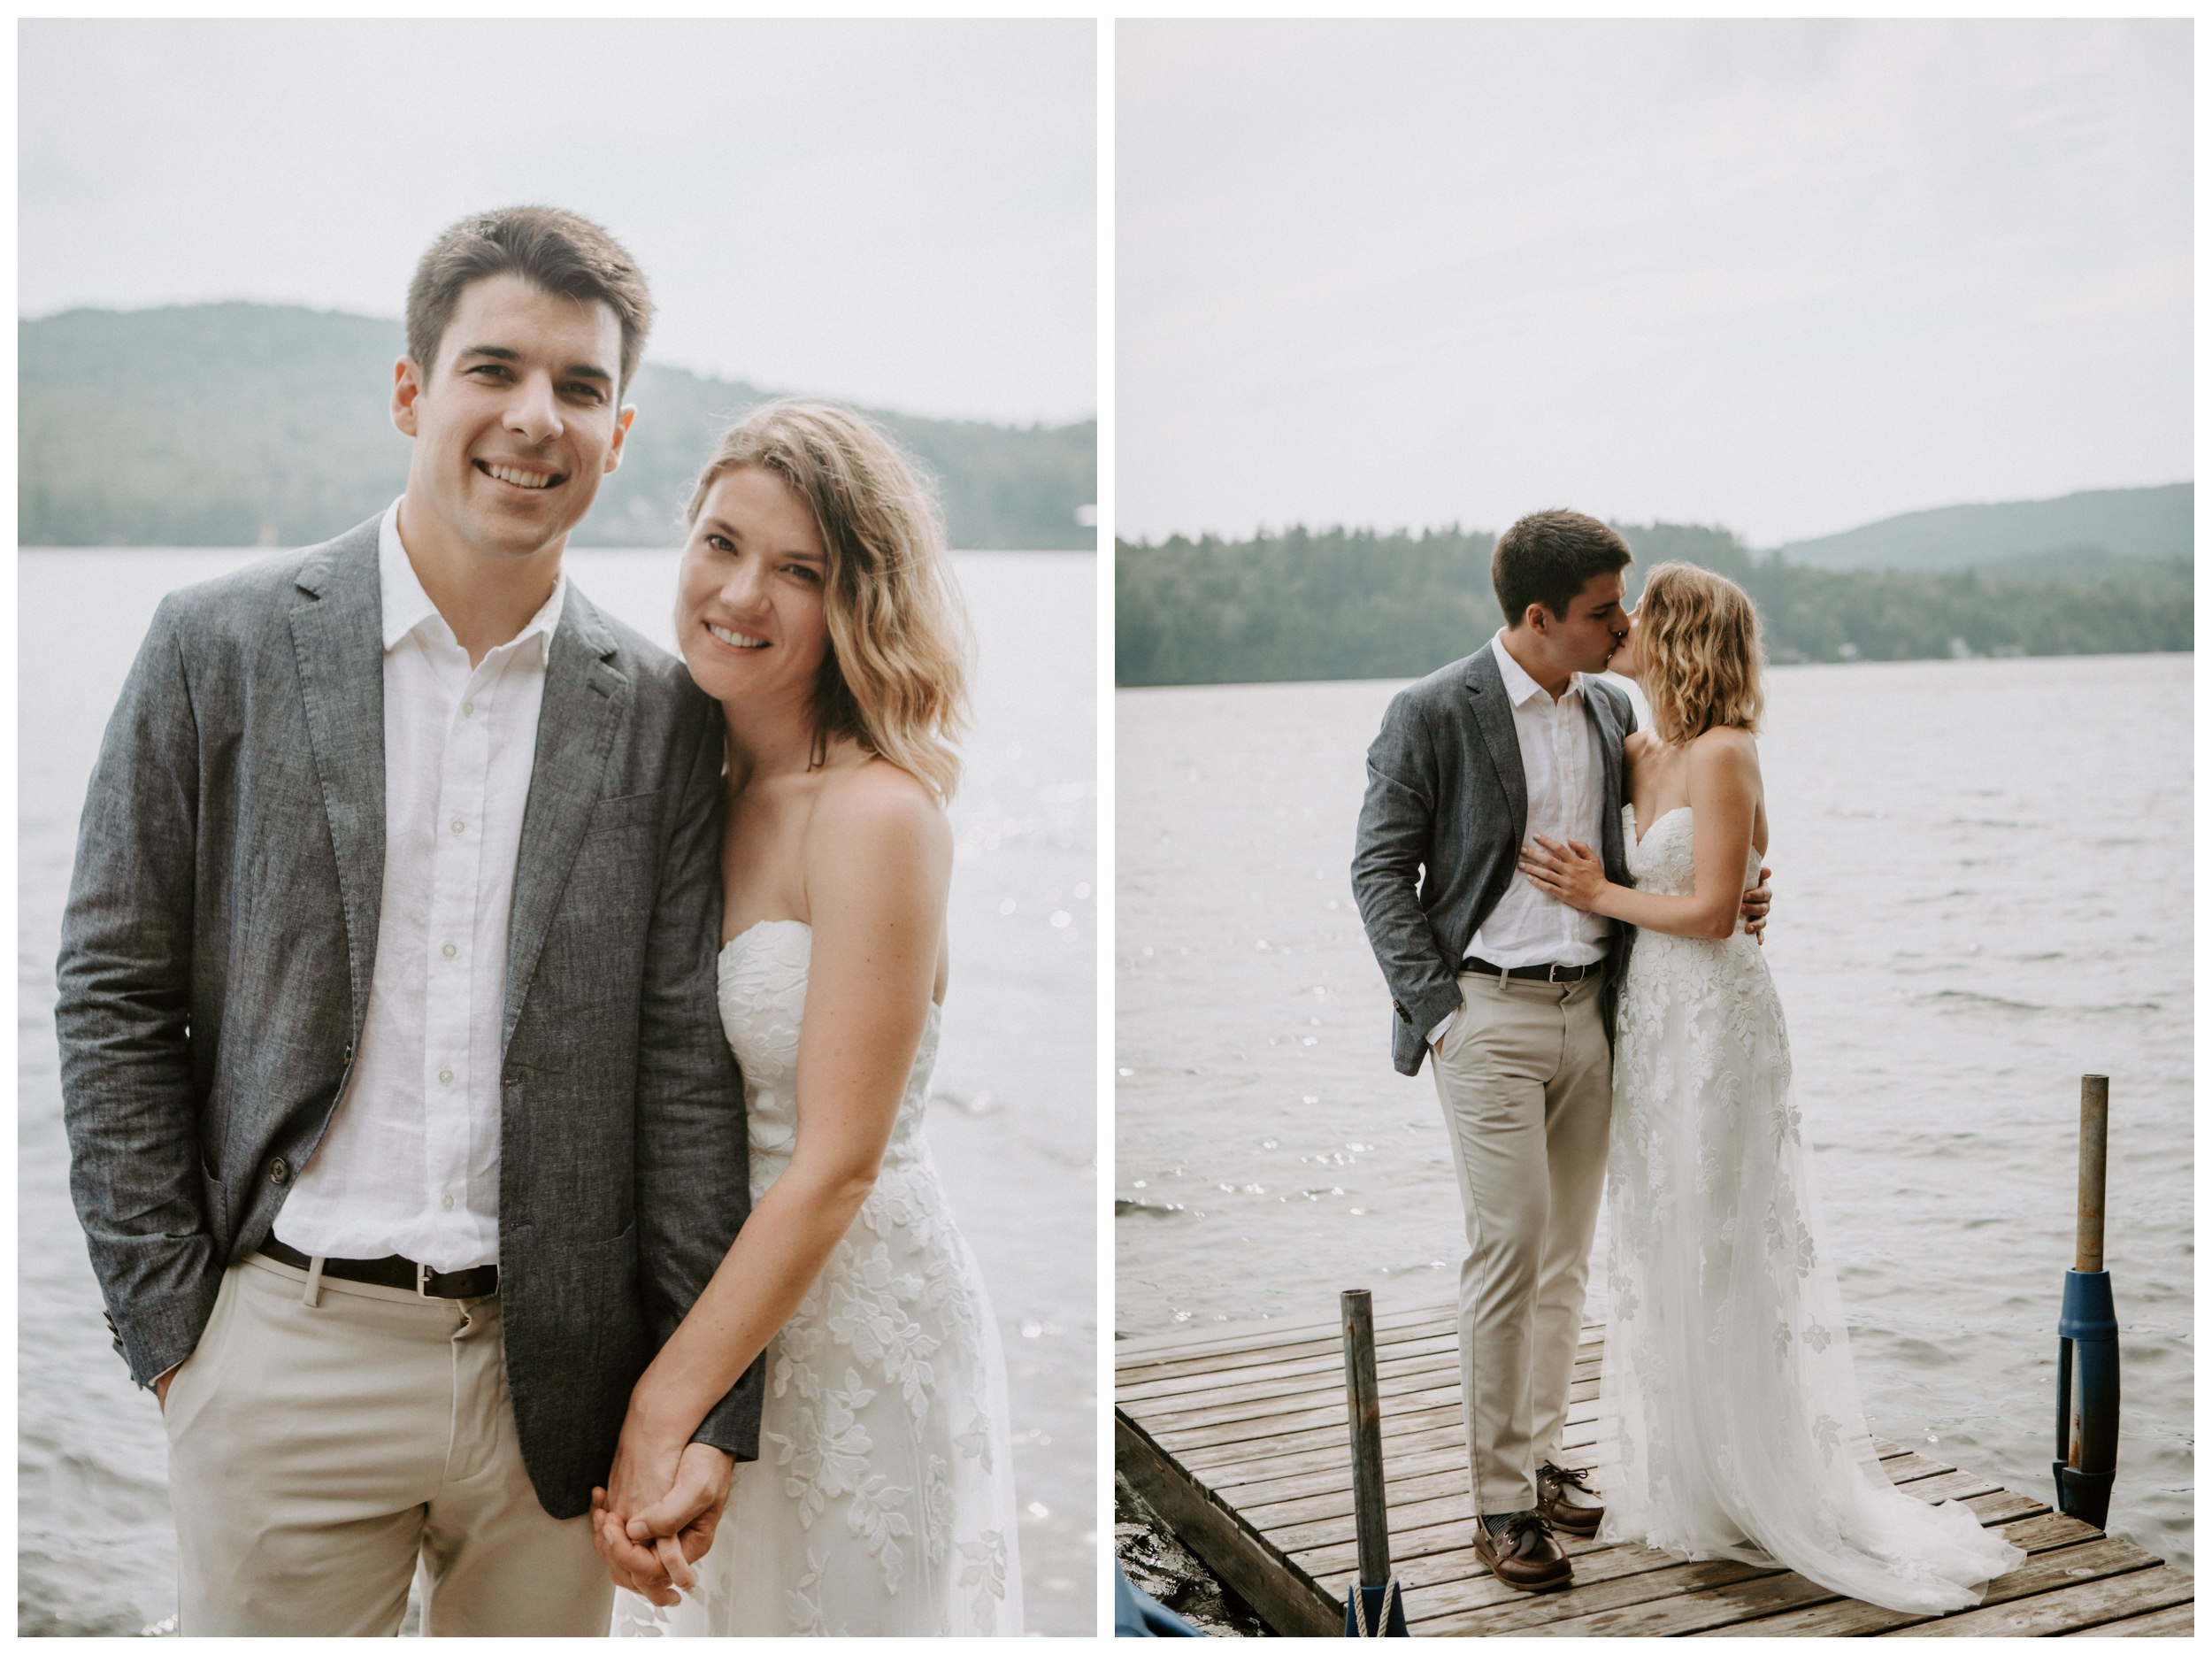 intimate-lakeside-wedding-adirondack-mountains41.jpg